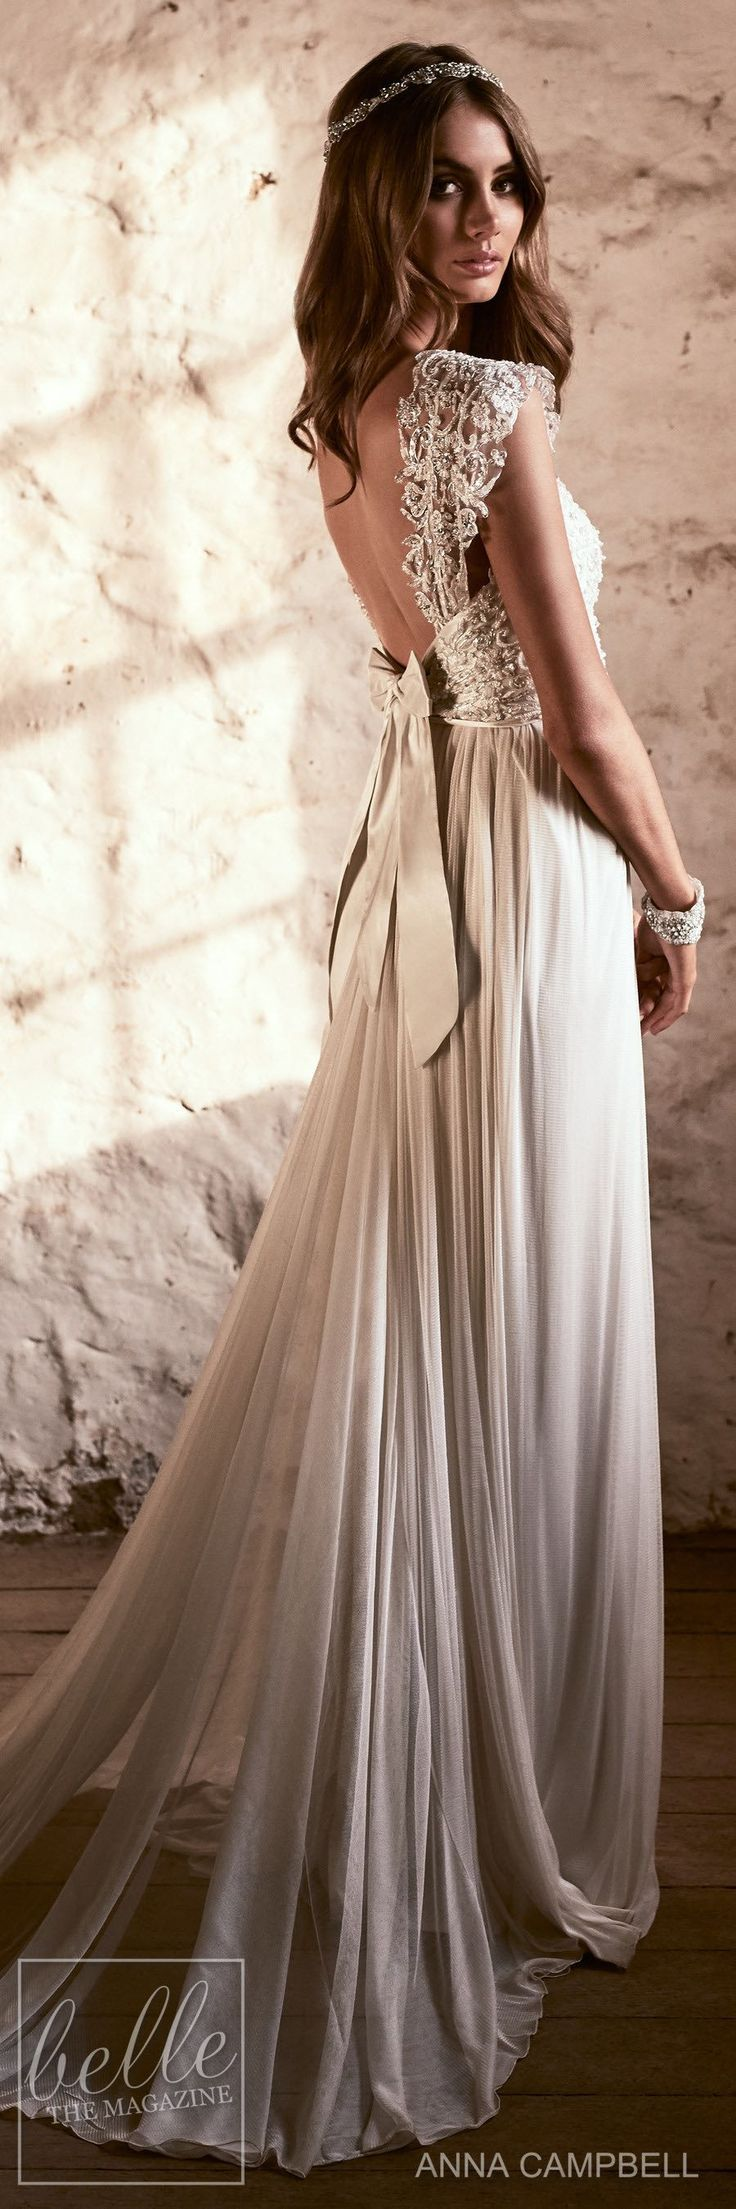 Wedding dresses by anna campbell eternal heart collection